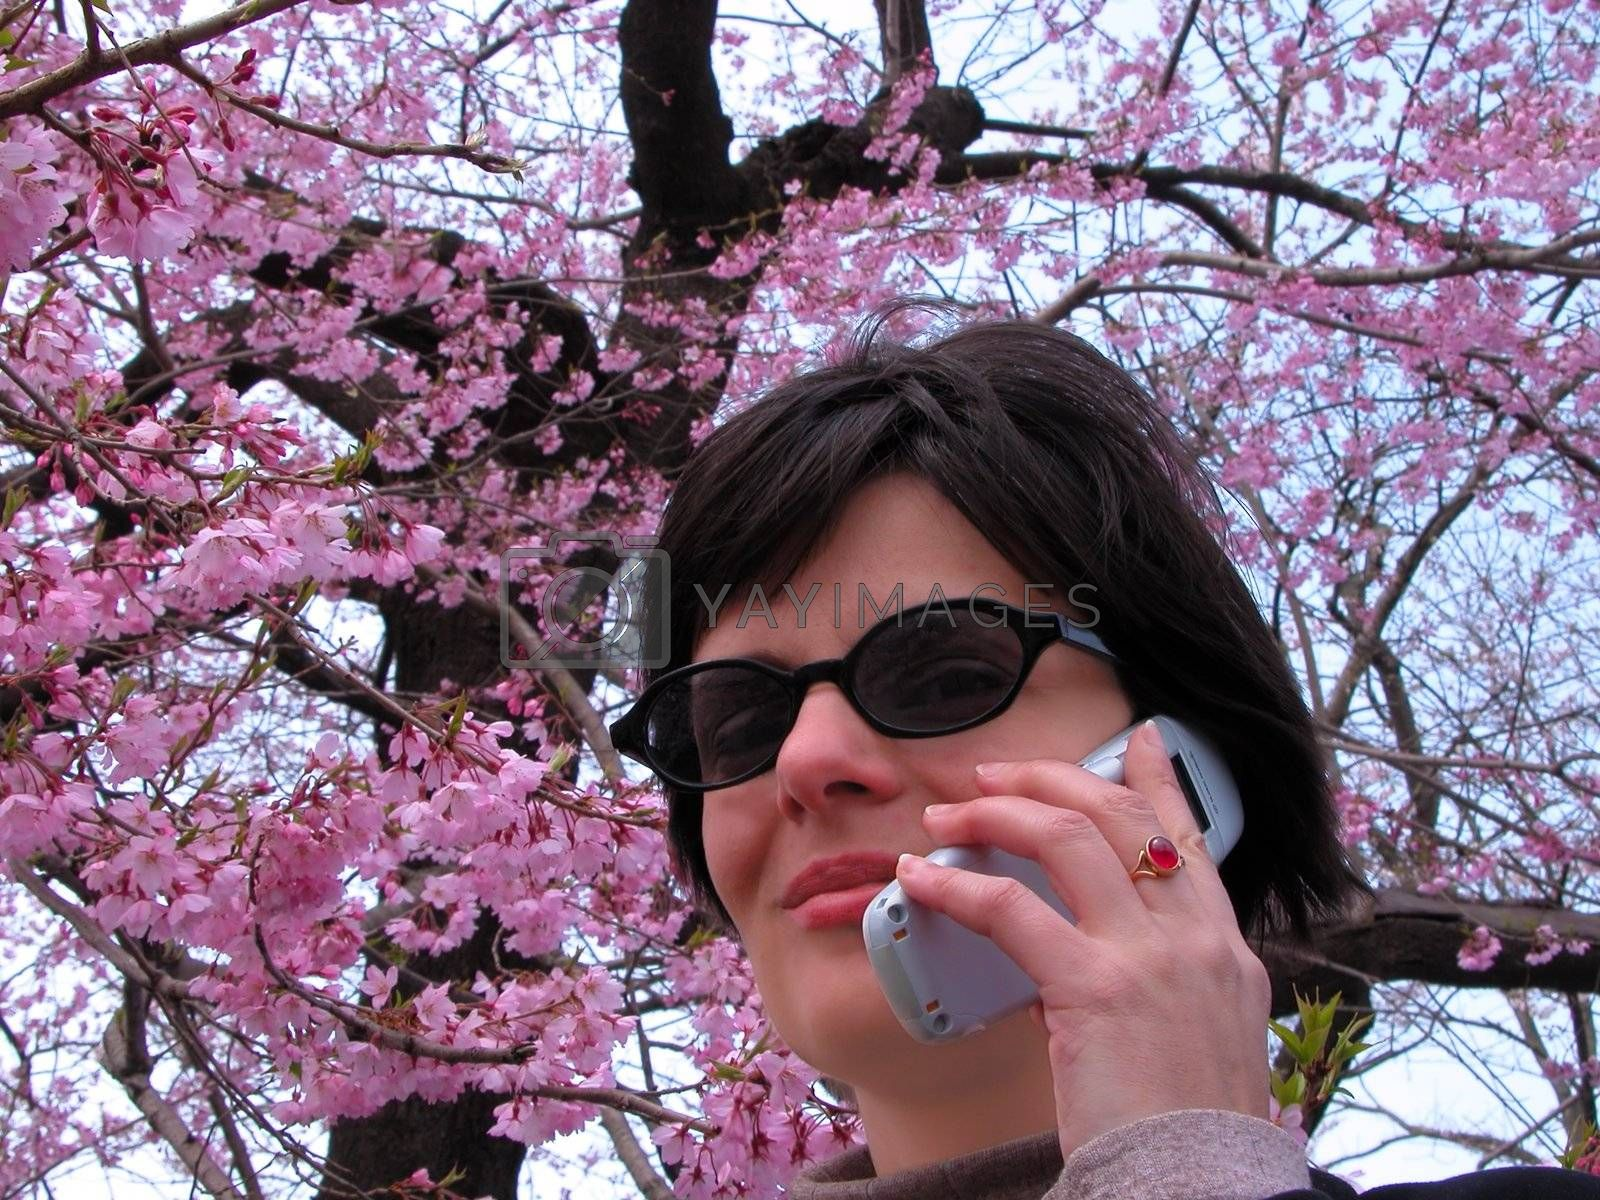 Smiling woman with sunglasse and mobile phone under a cherry blossom tree-metaphor for fresh communication